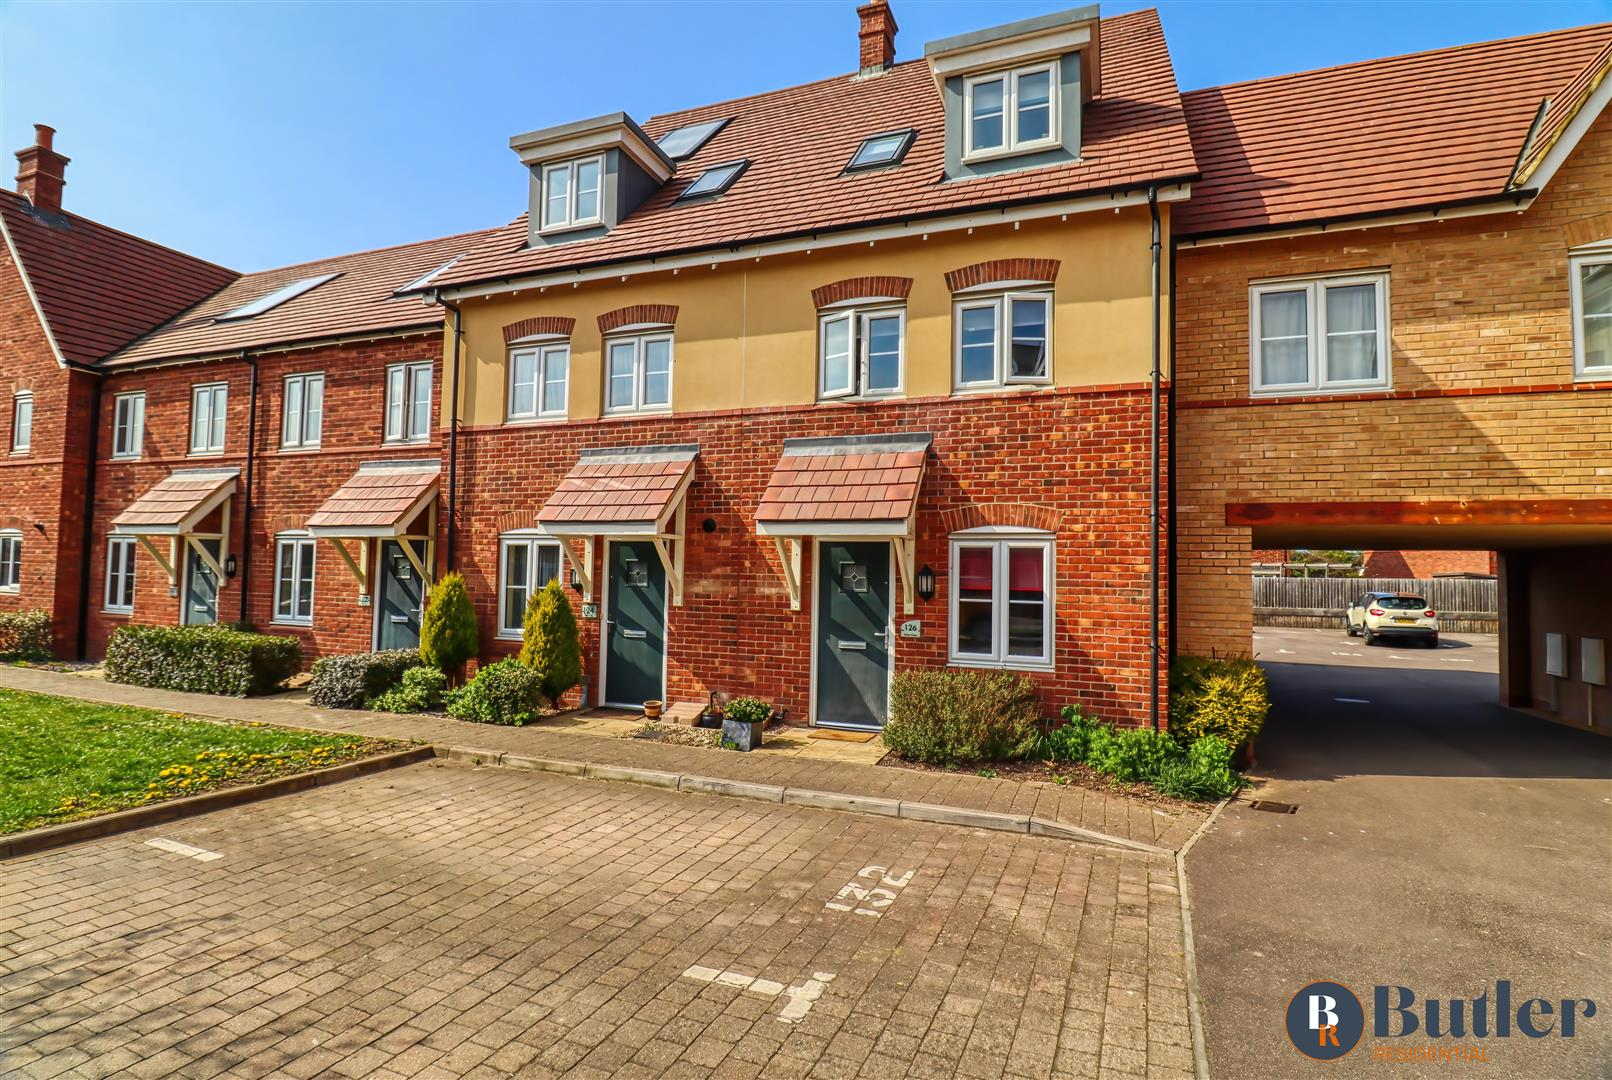 3 bed town house for sale in Hilton Close, Bedford - Property Image 1